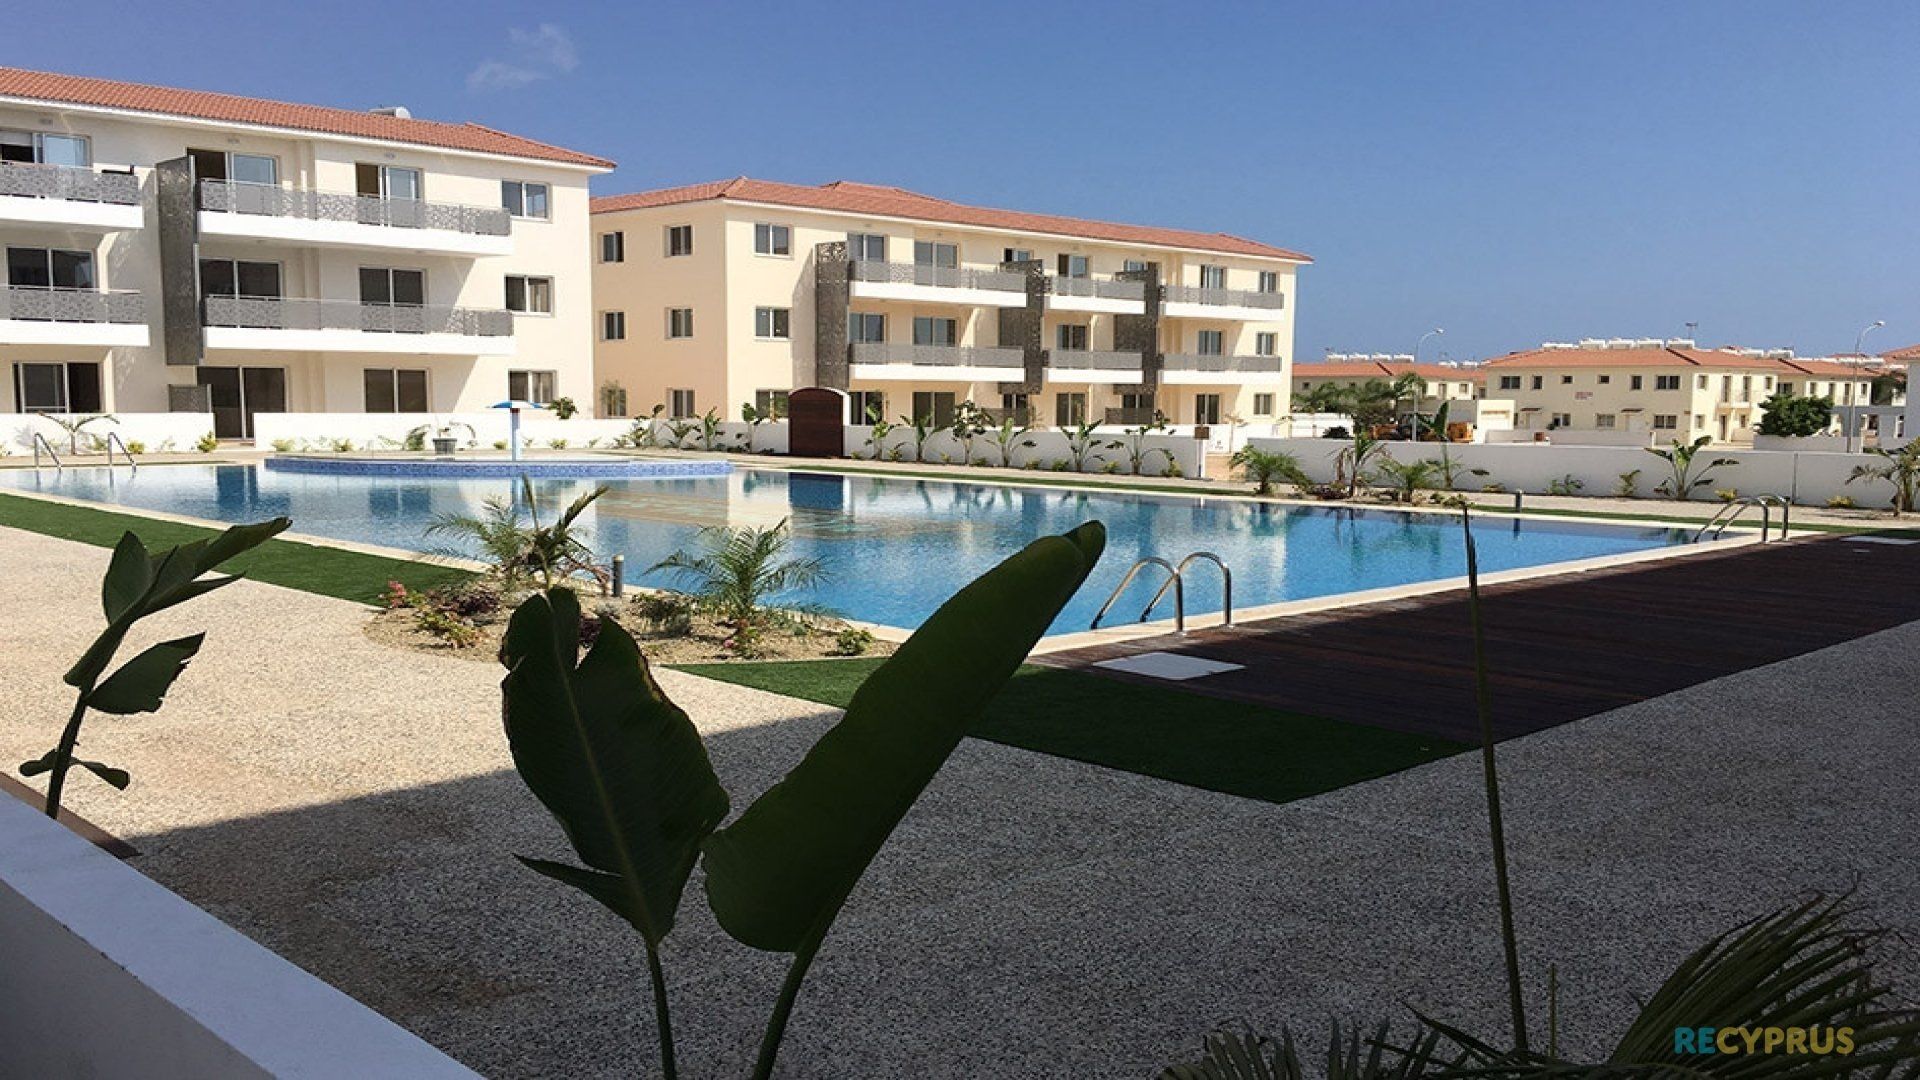 Apartment for sale Kapparis Famagusta Cyprus 11 3444